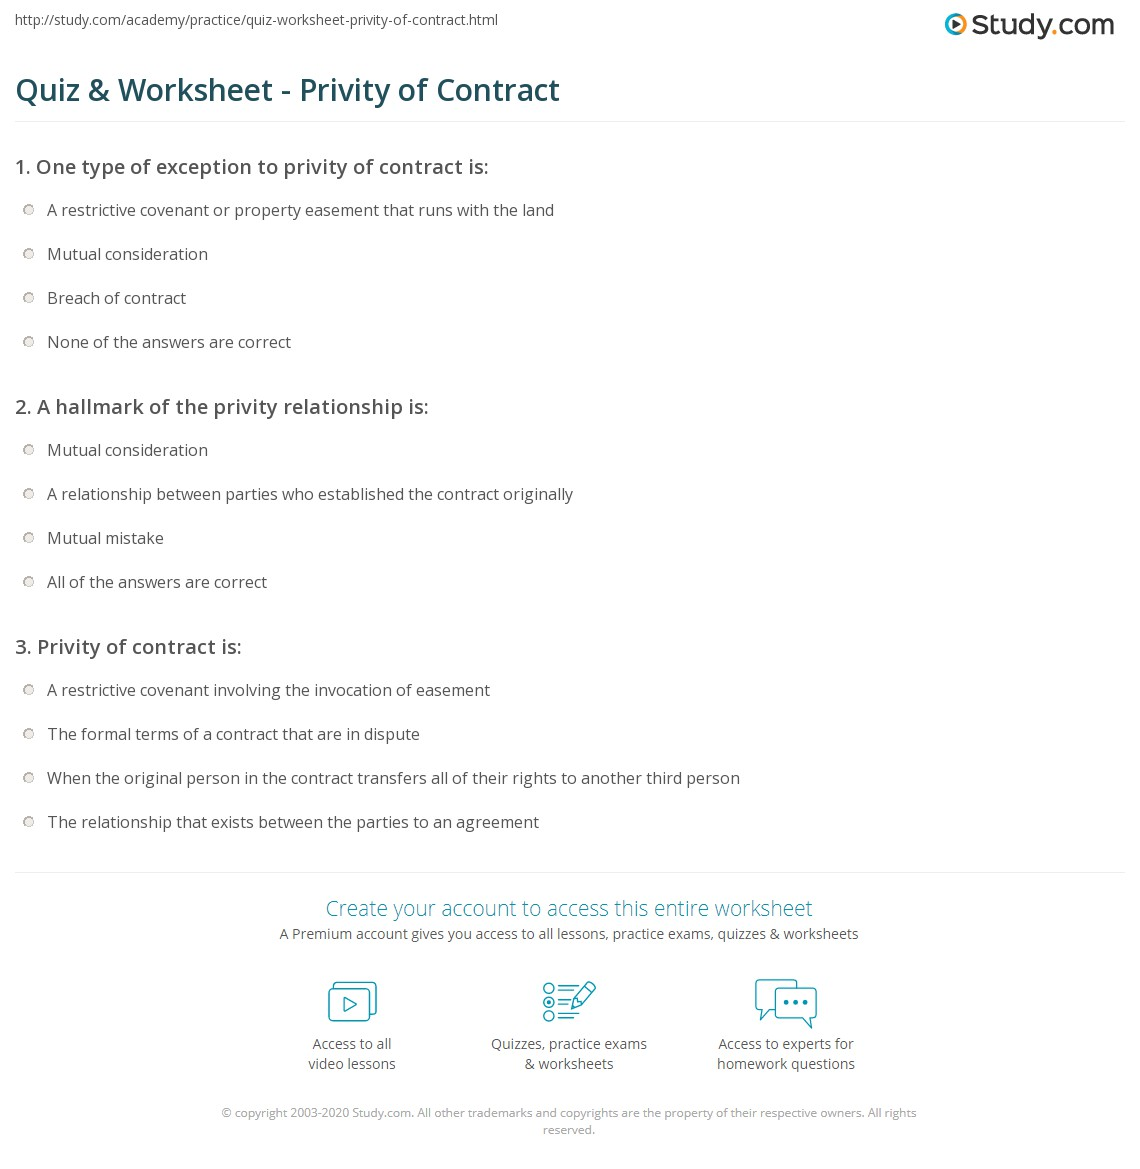 quiz & worksheet - privity of contract   study